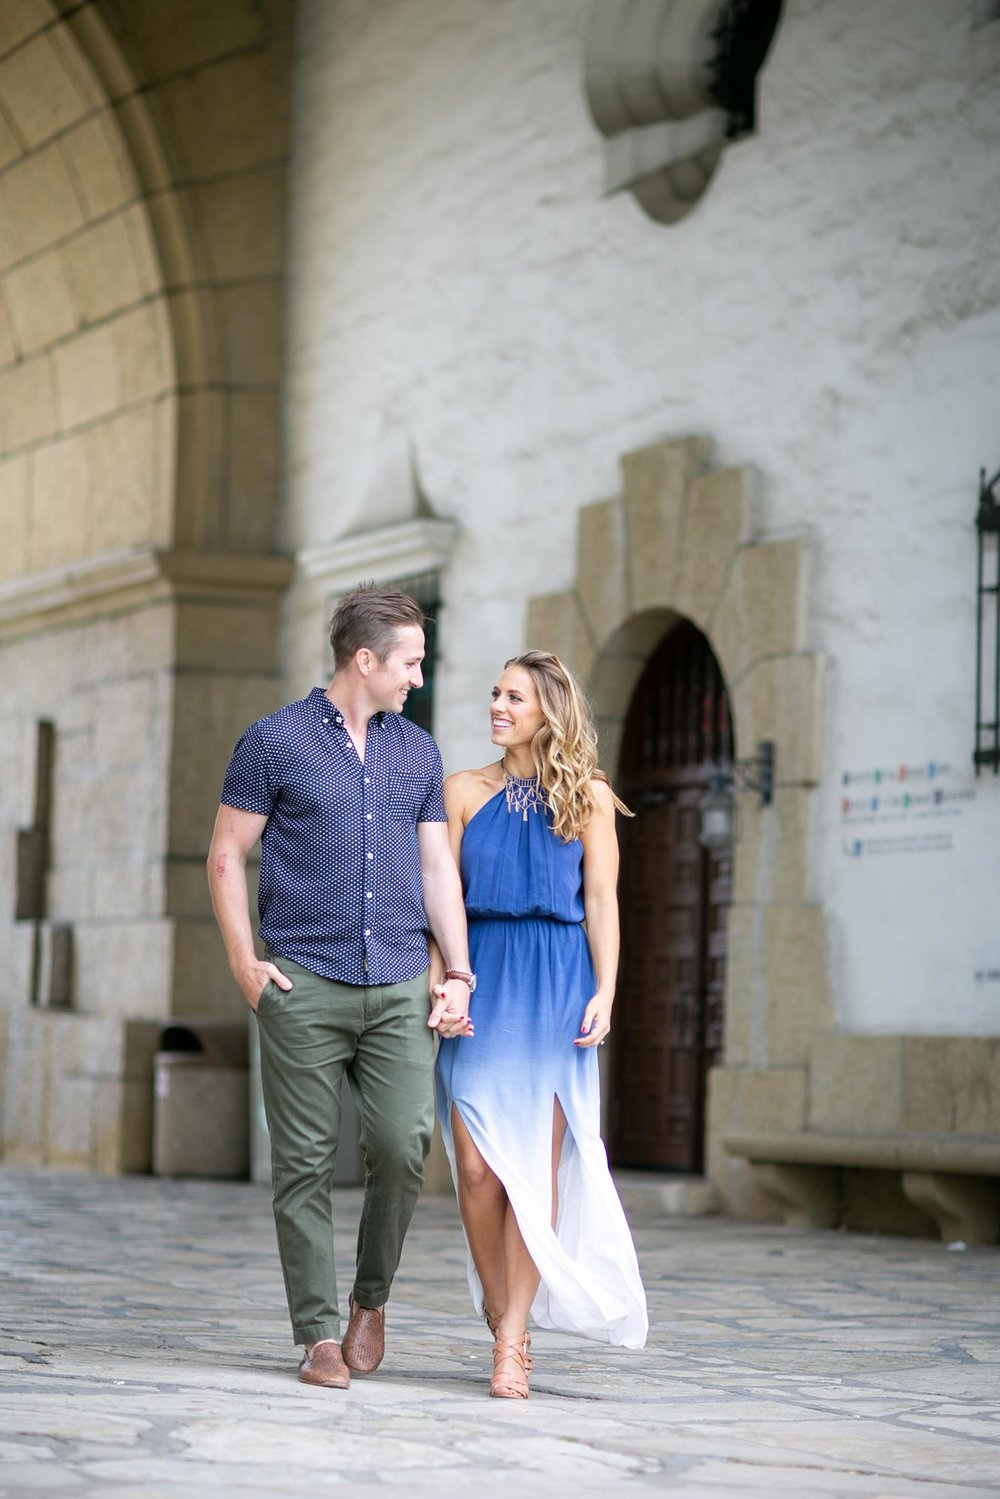 Santa Barbara Engagement | Miki & Sonja Photography | mikiandsonja.com